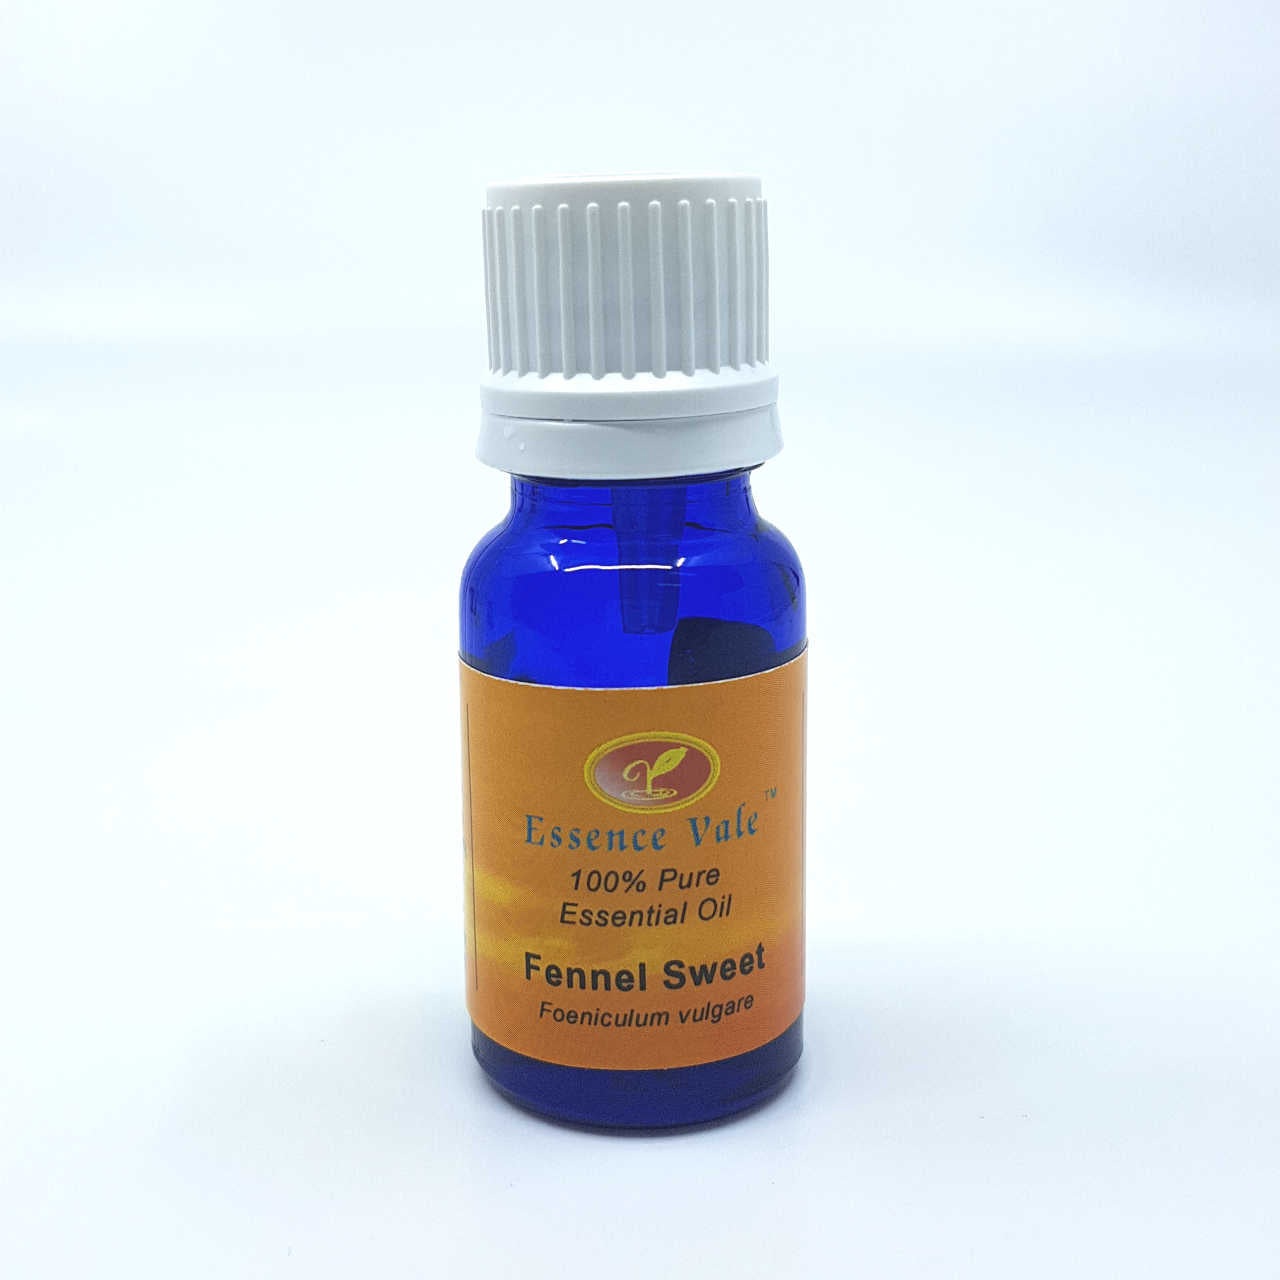 ESSENCE VALE 100% Pure Fennel Sweet Essential Oil